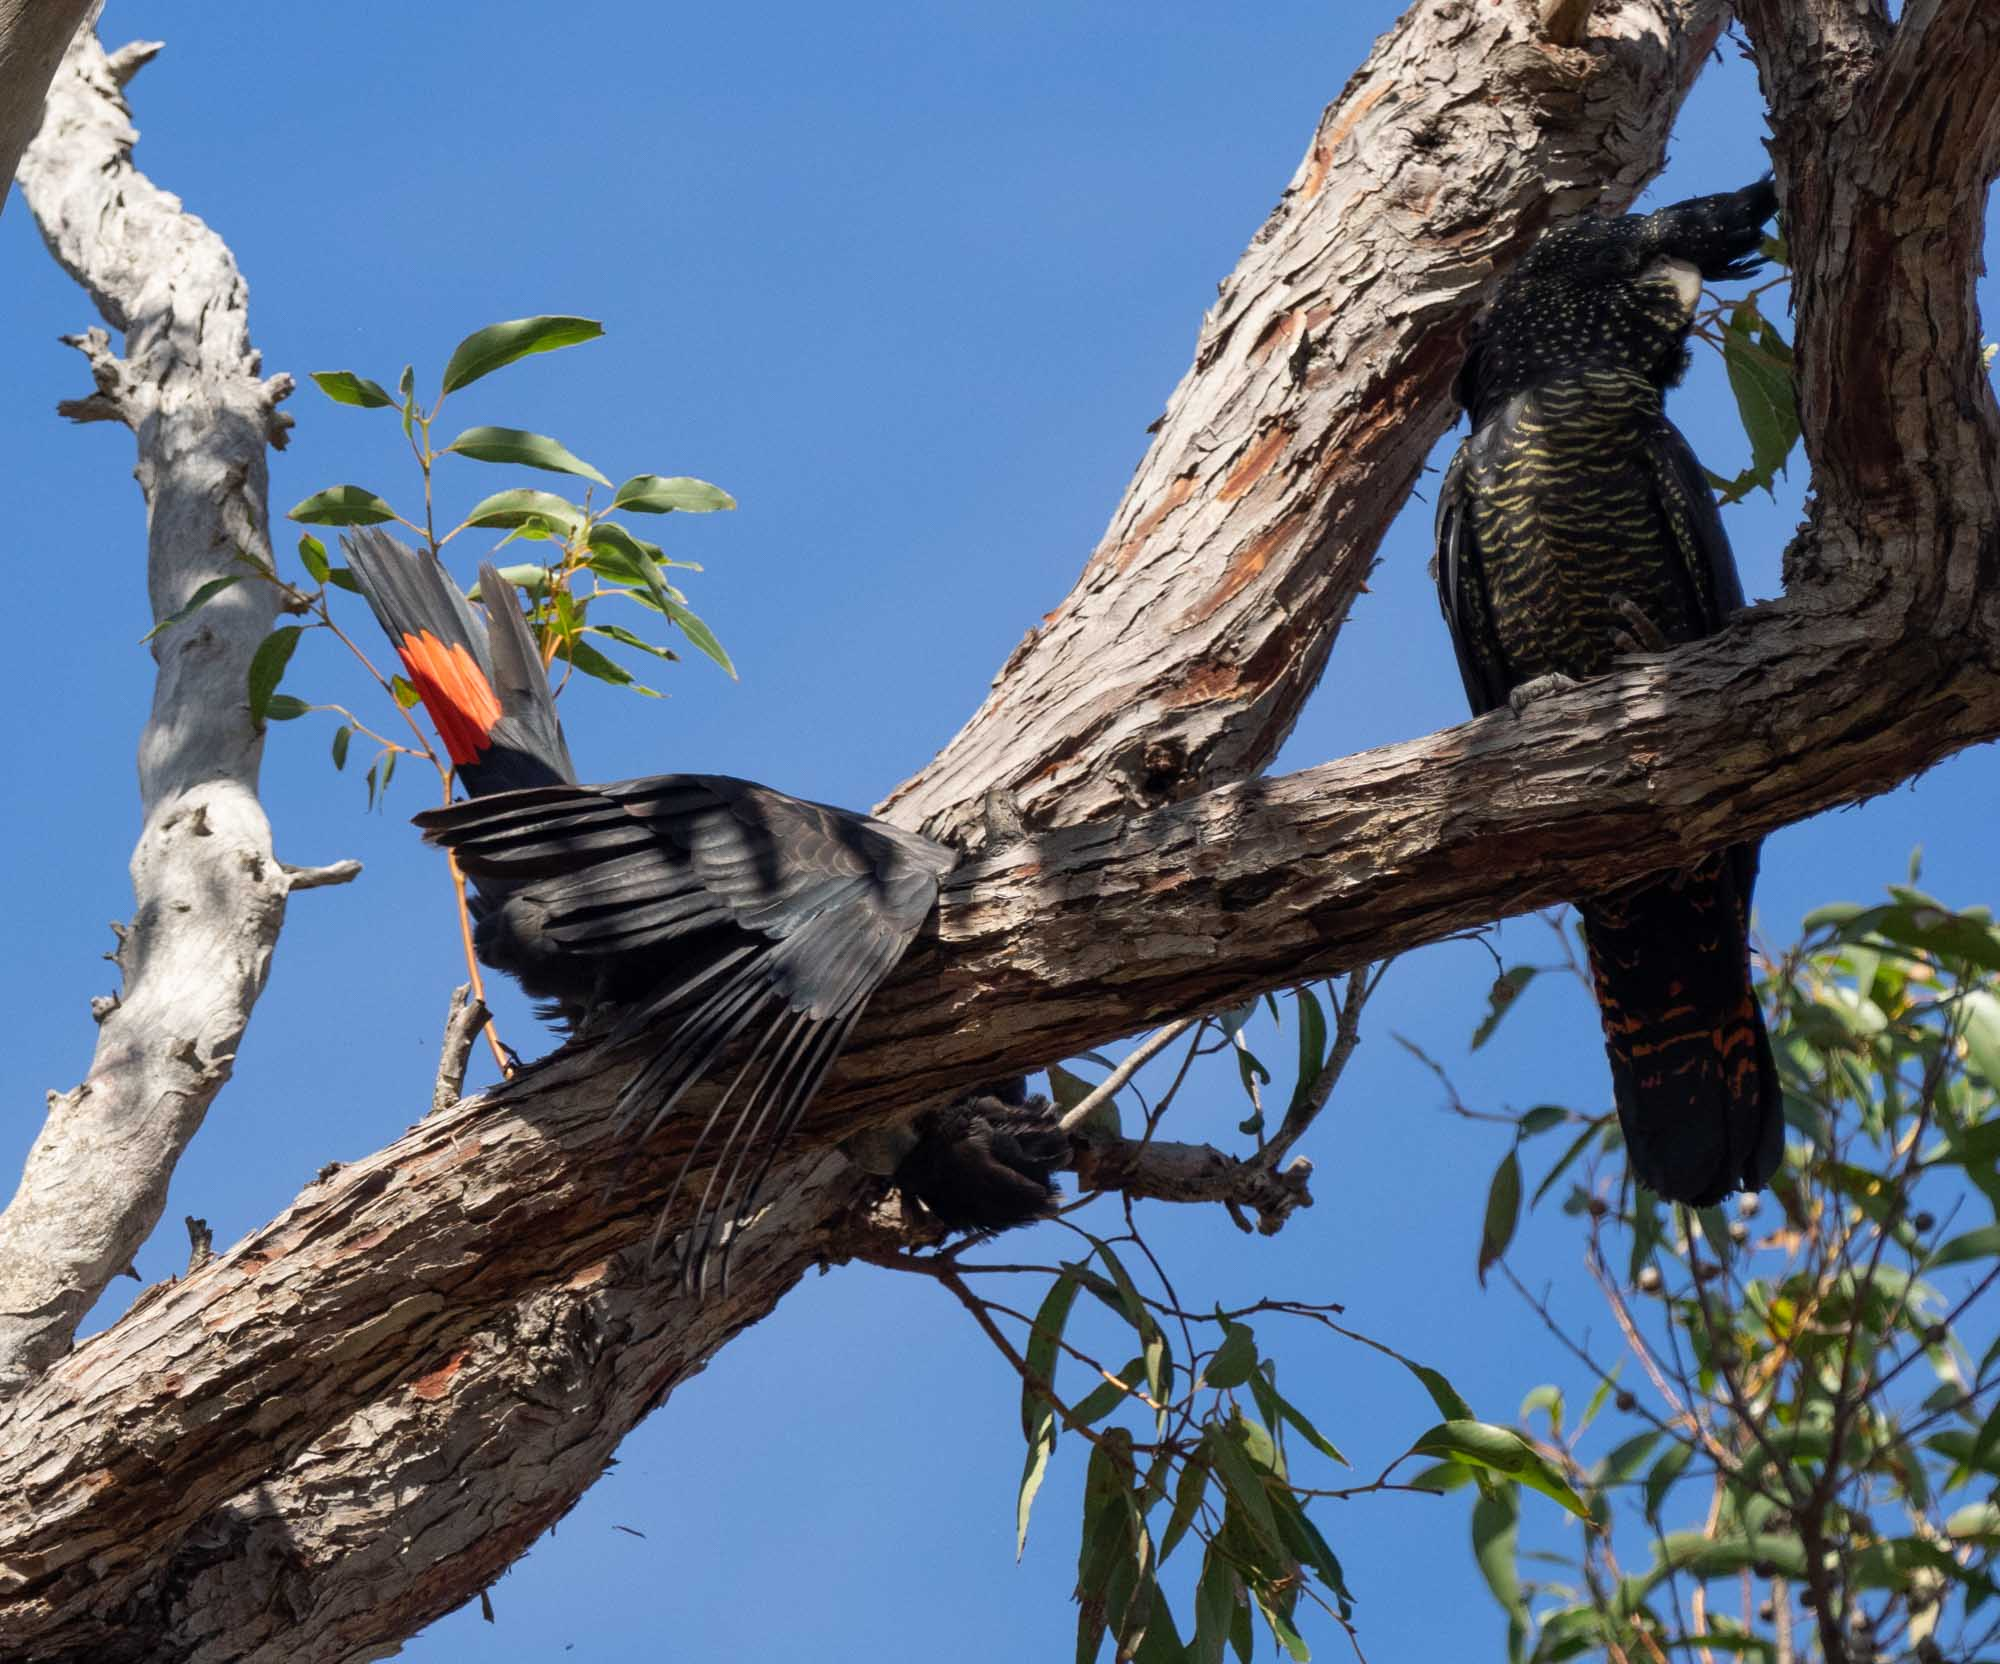 The male (left) flares his tail in what is clearly a deliberate communication directed at the female (right)